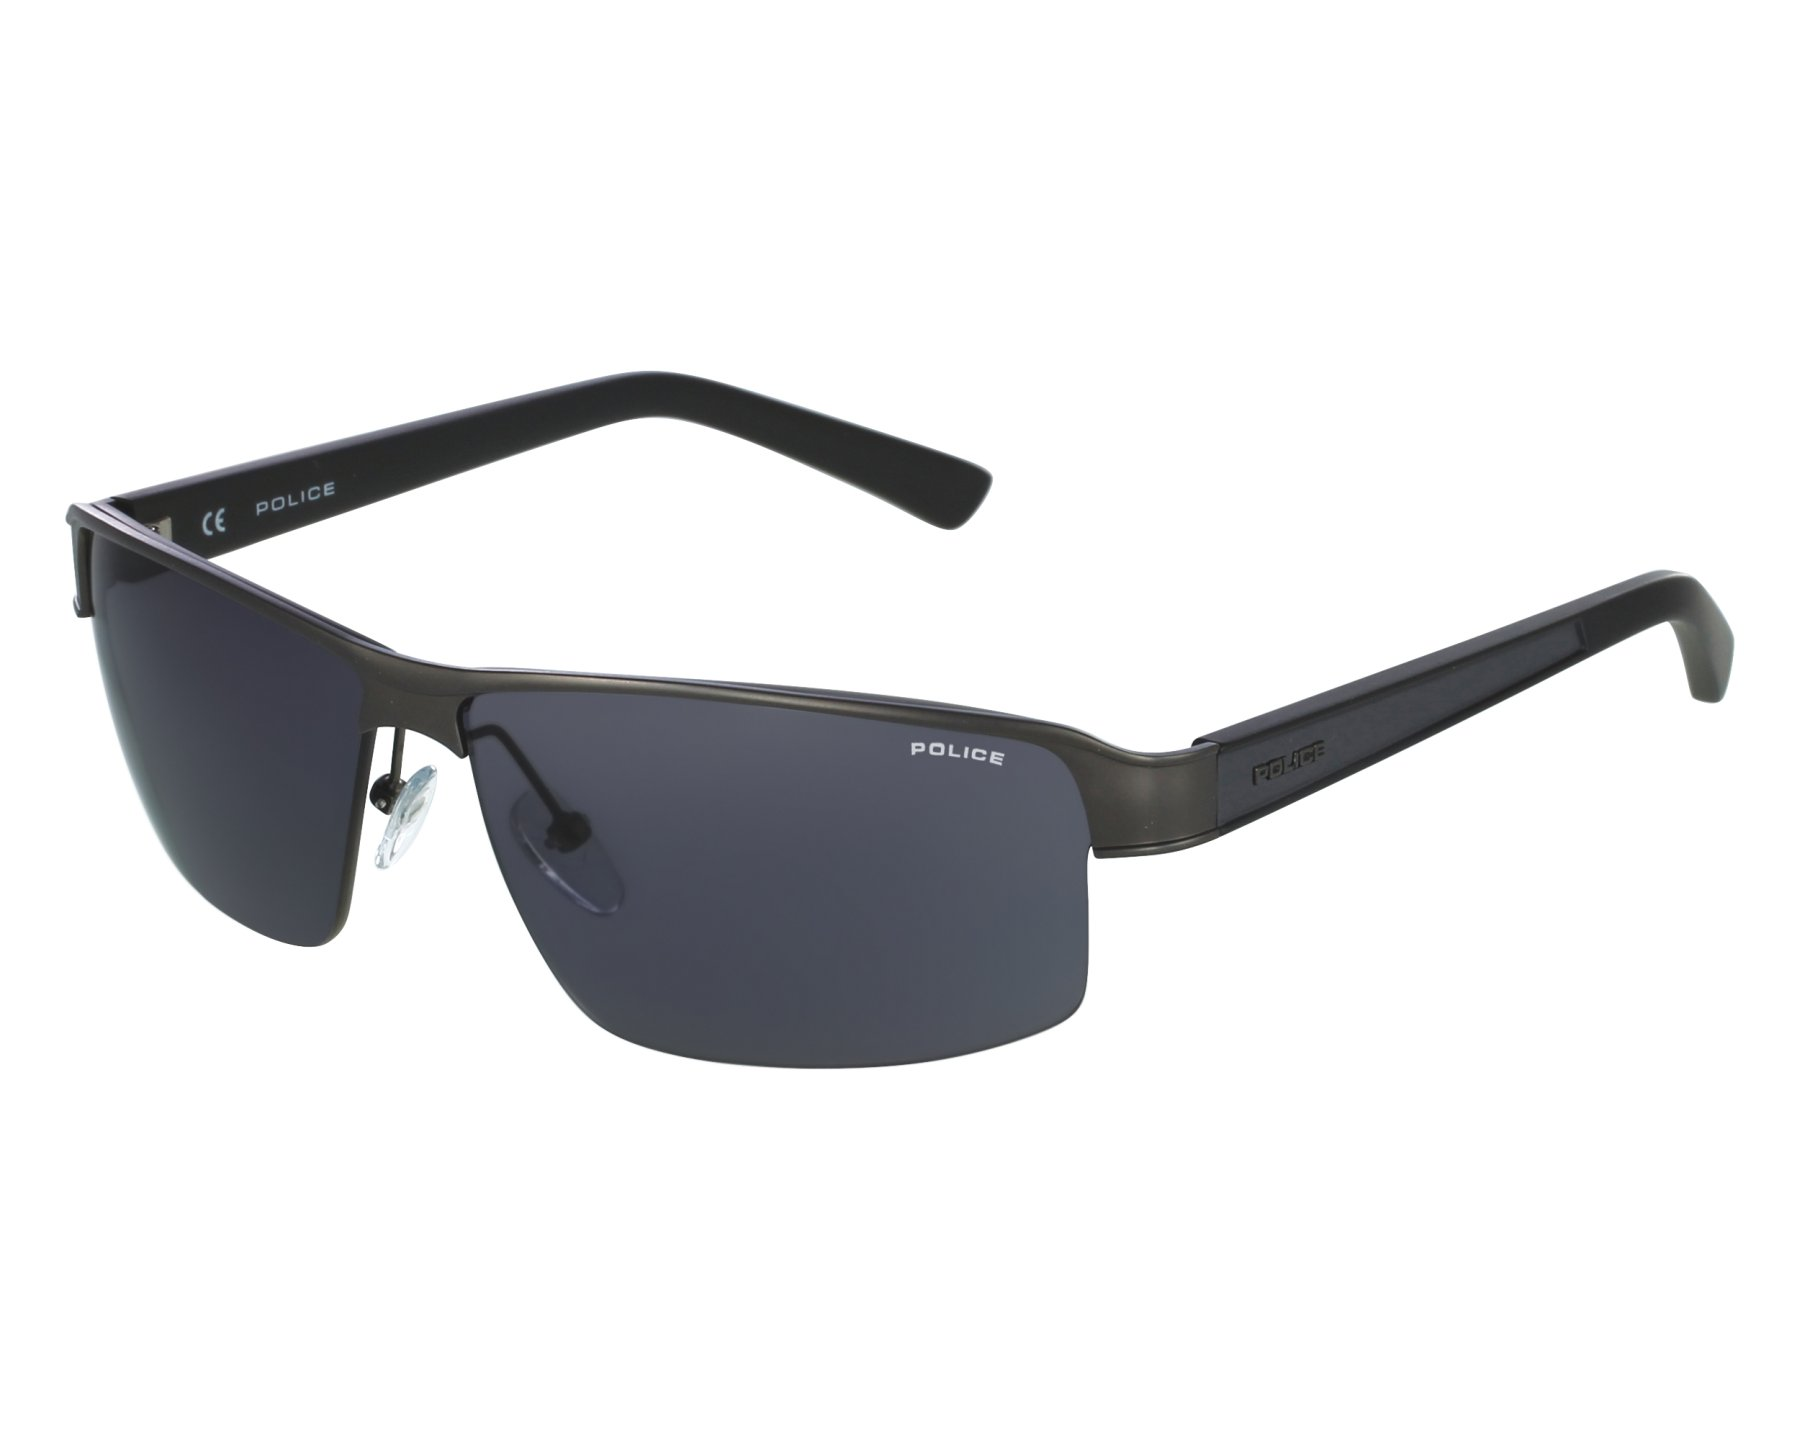 6340241941d Sunglasses Police S-8855 0627 - Grey front view